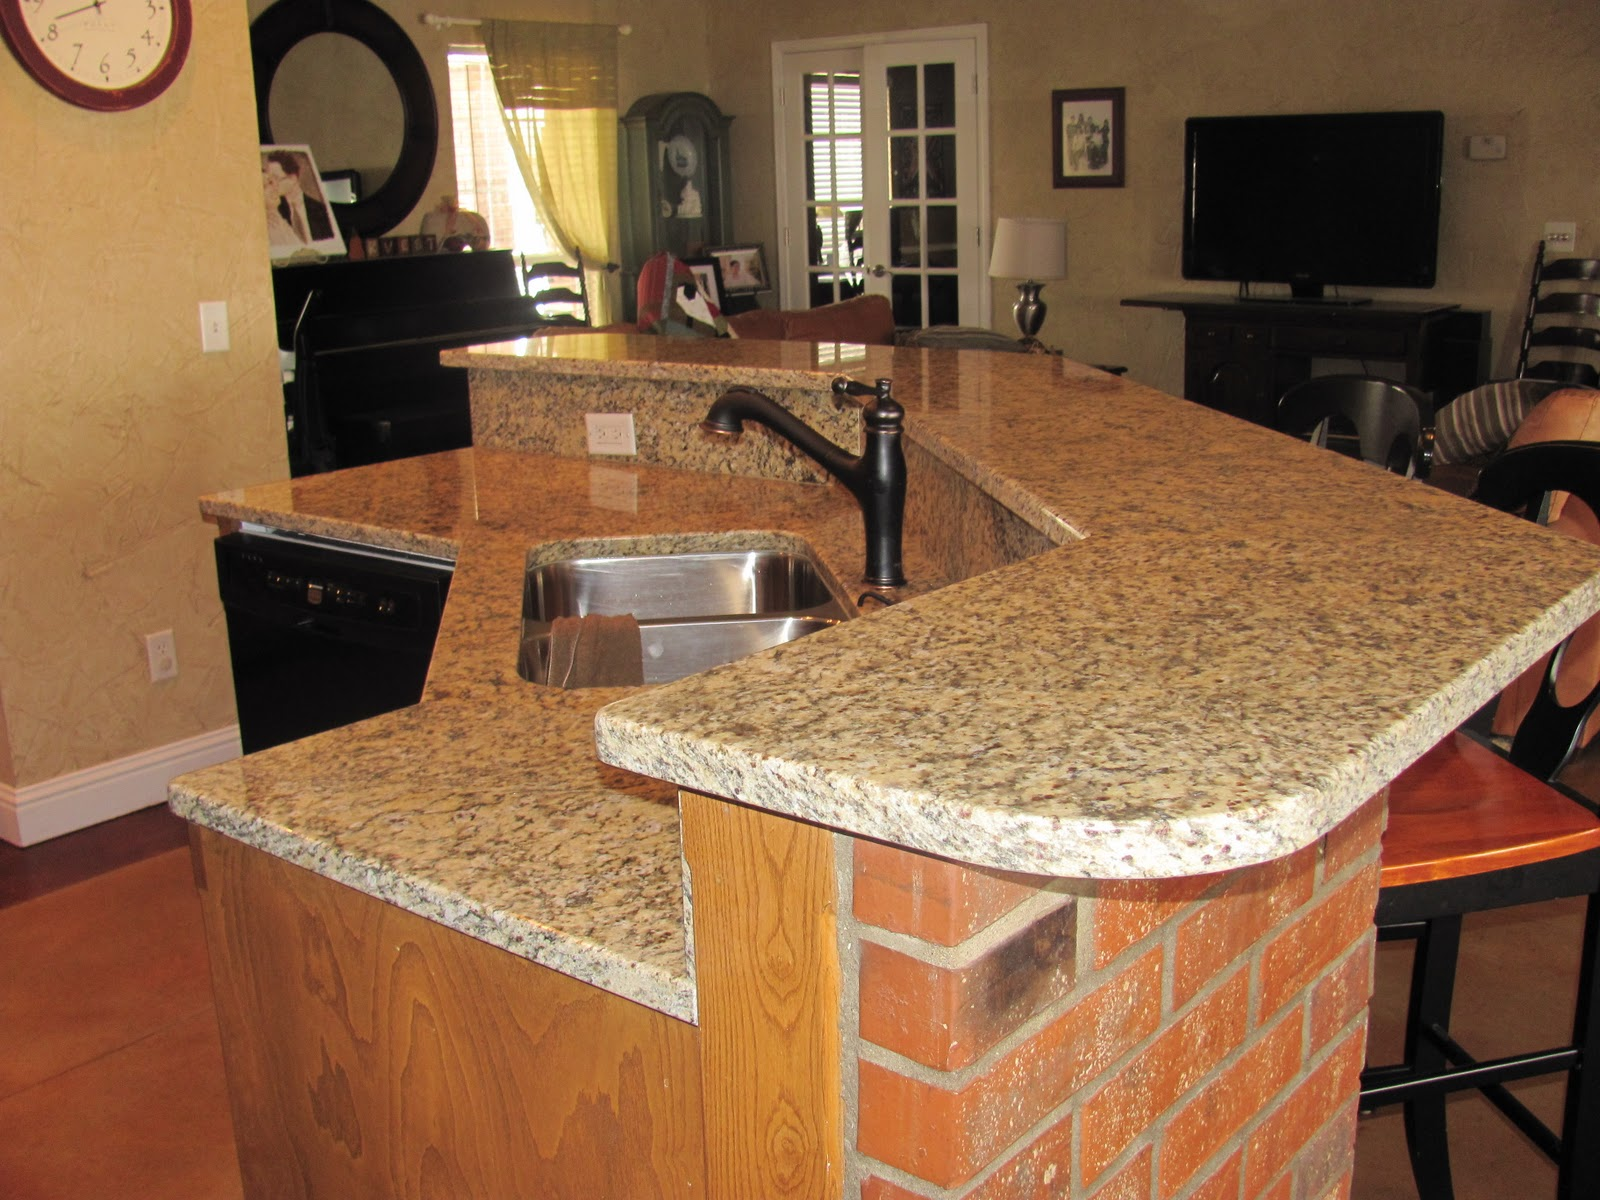 How Much For A Granite Countertop Installed In My Kitchen